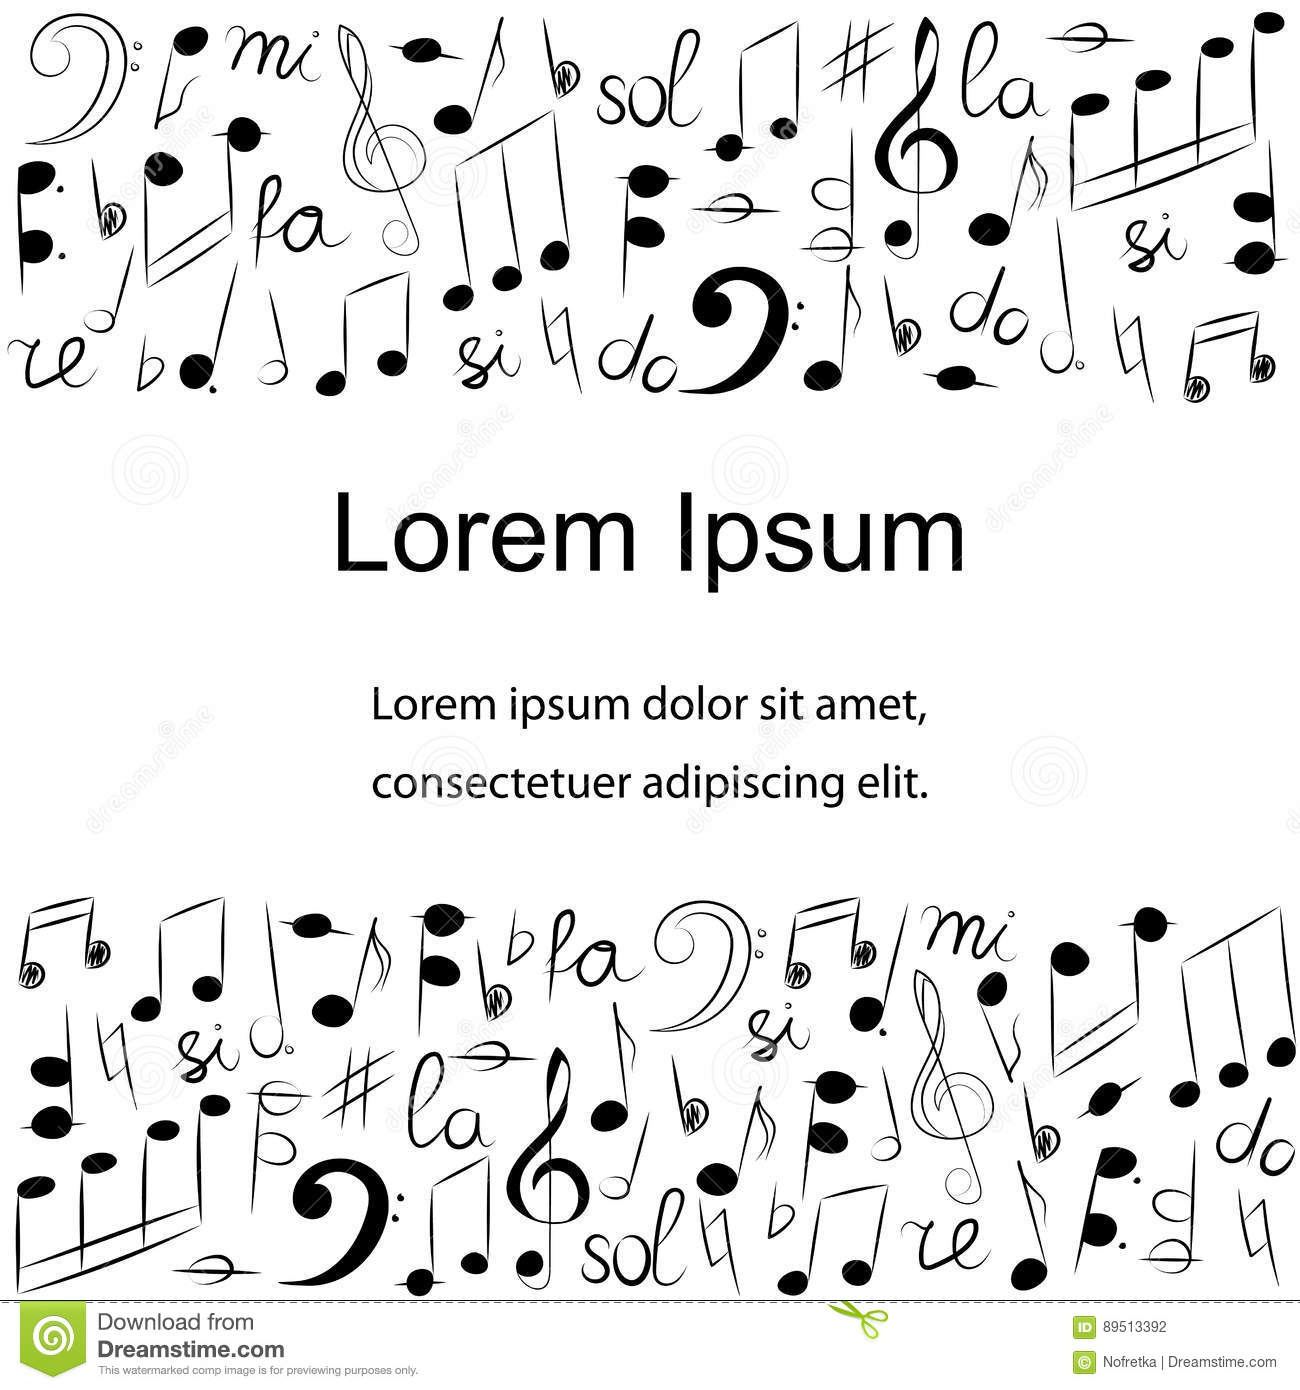 Hand drawn set of music symbols doodle treble clef bass clef hand drawn set of music symbols doodle treble clef bass clef notes and lyre template with place for text in center biocorpaavc Gallery